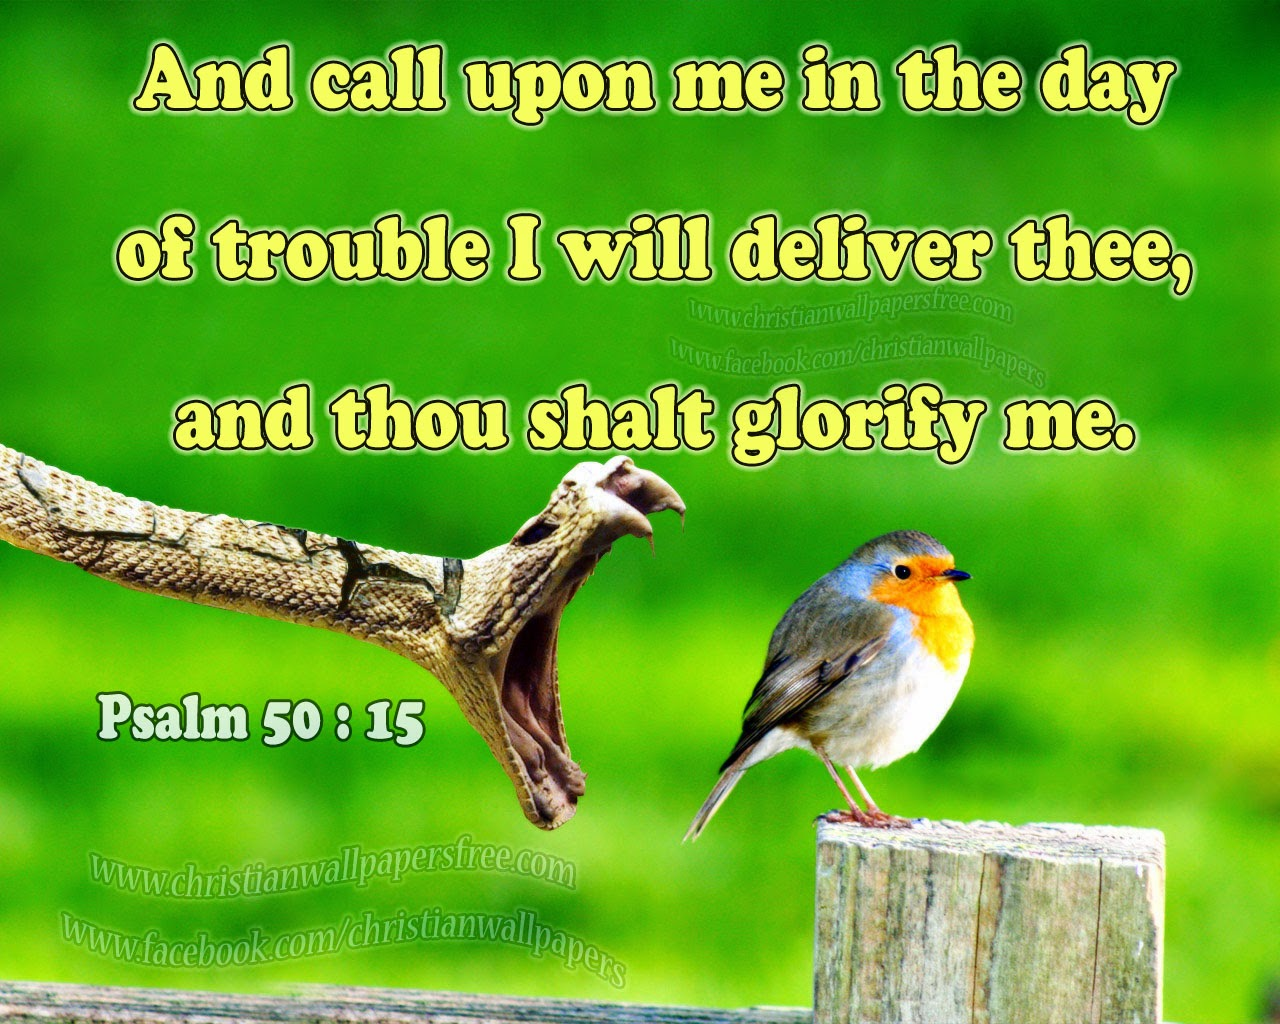 Download hd christmas new year 2018 bible verse greetings card and call upon me in the day of trouble i will deliver thee and thou shalt glorify me kristyandbryce Image collections